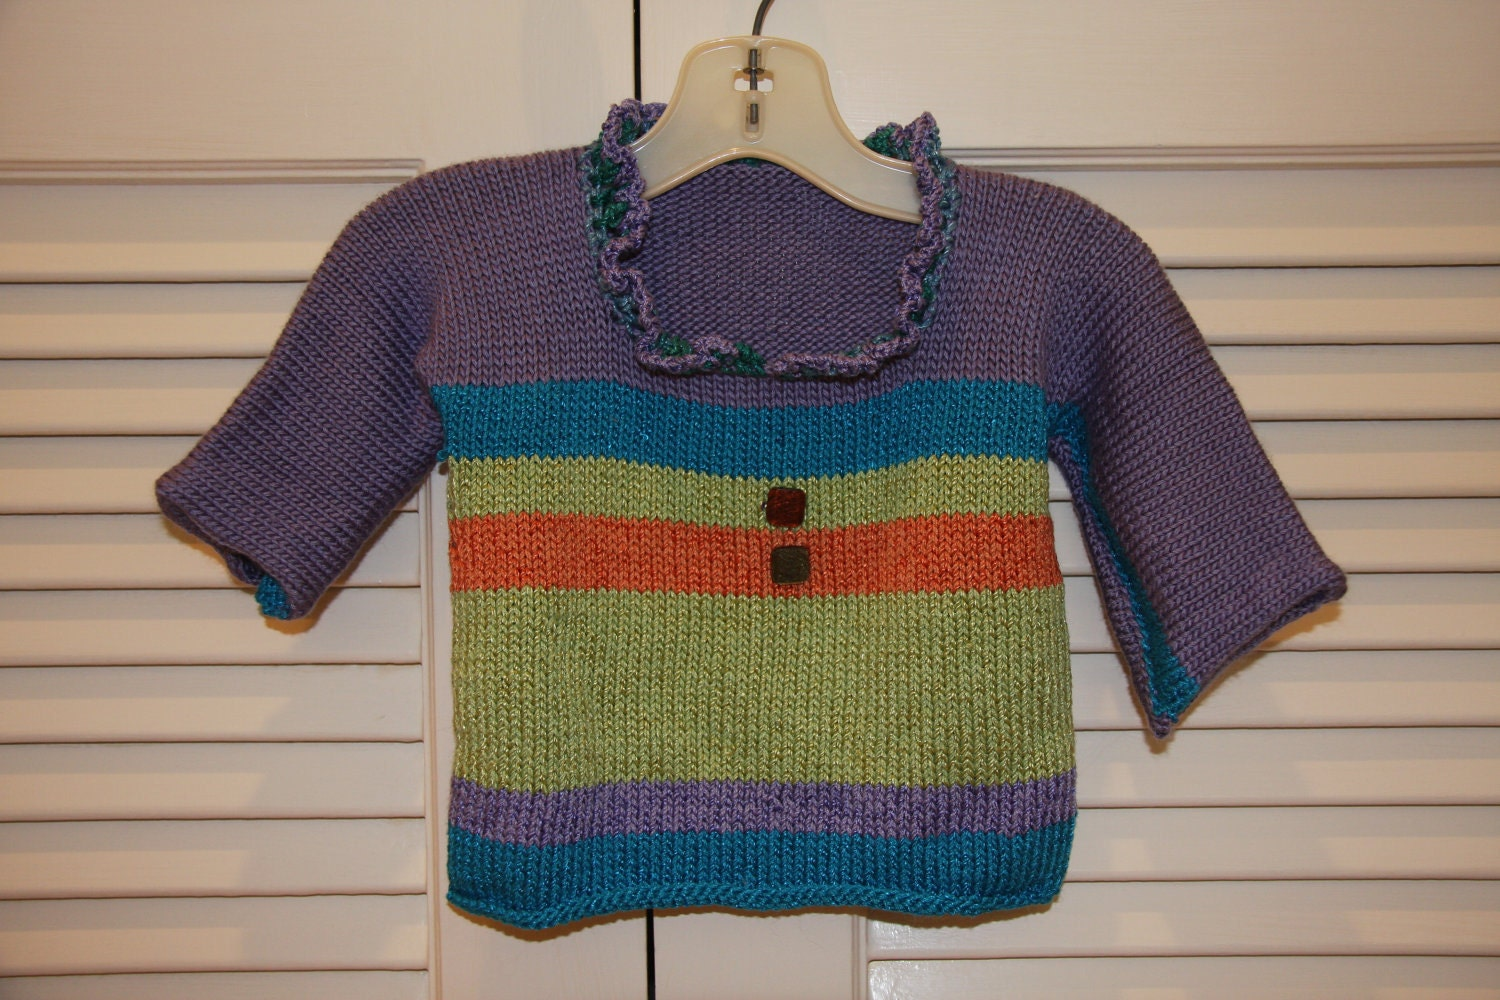 Knitting Baby Sweater Measurements : Hand knit striped baby sweater size newborn to months